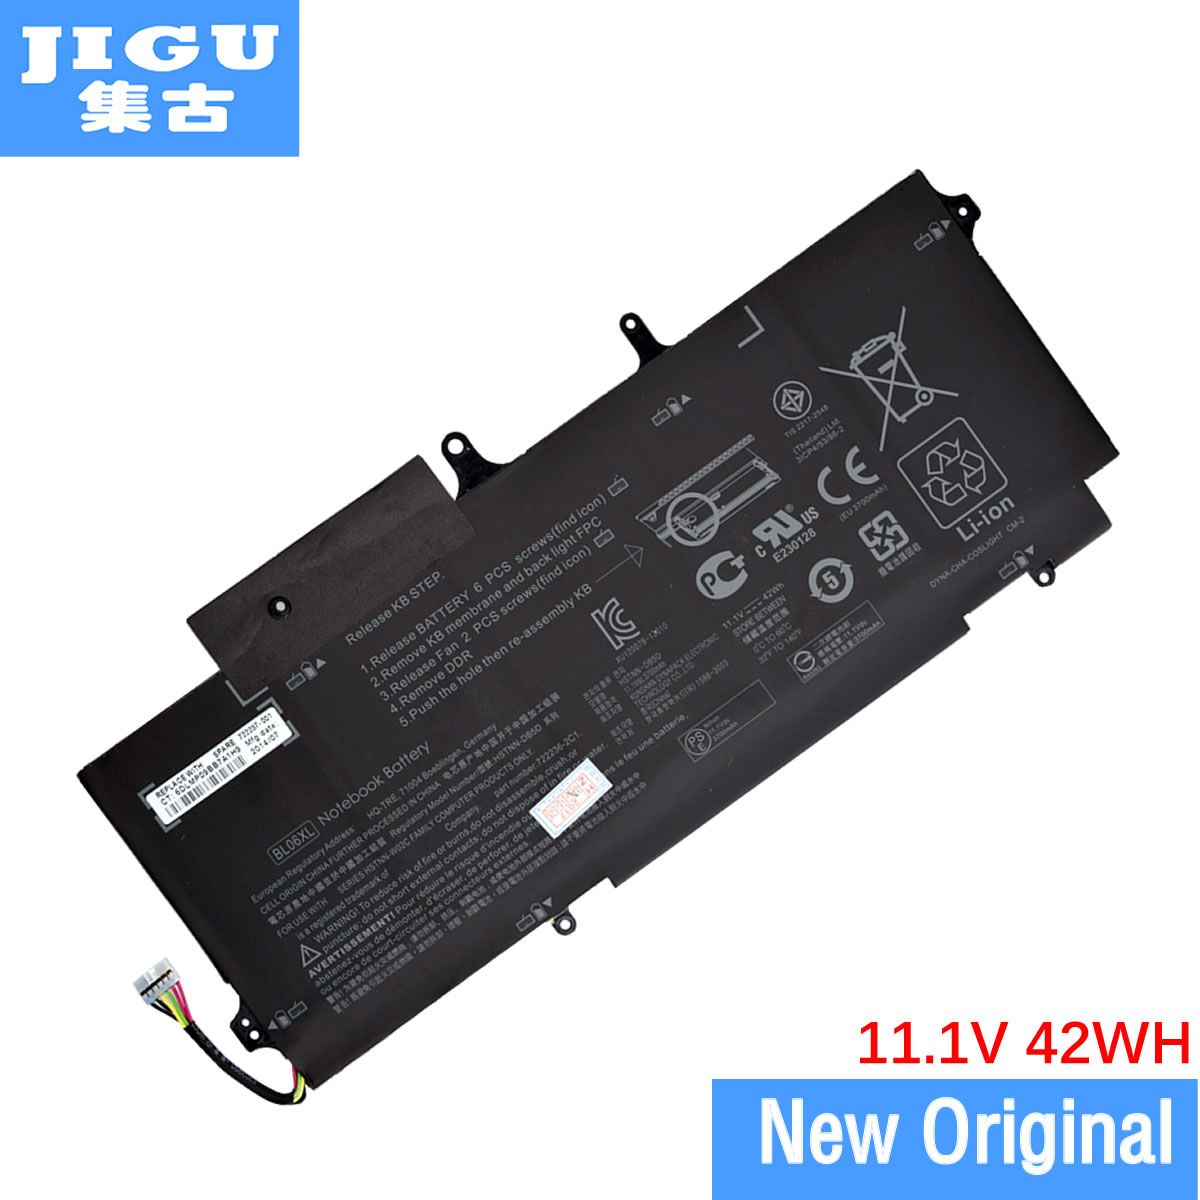 JIGU BL06042XL HSTNN-W02C 722236-2C1 BL06XL Original Laptop Battery For HP EliteBook Folio 1040 G0 G1 G2 jigu laptop battery bl06042xl bl06xl hstnn db5d hstnn ib5d hstnn w02c for hp for elitebook folio 1040 g0 g1 l7z22pa